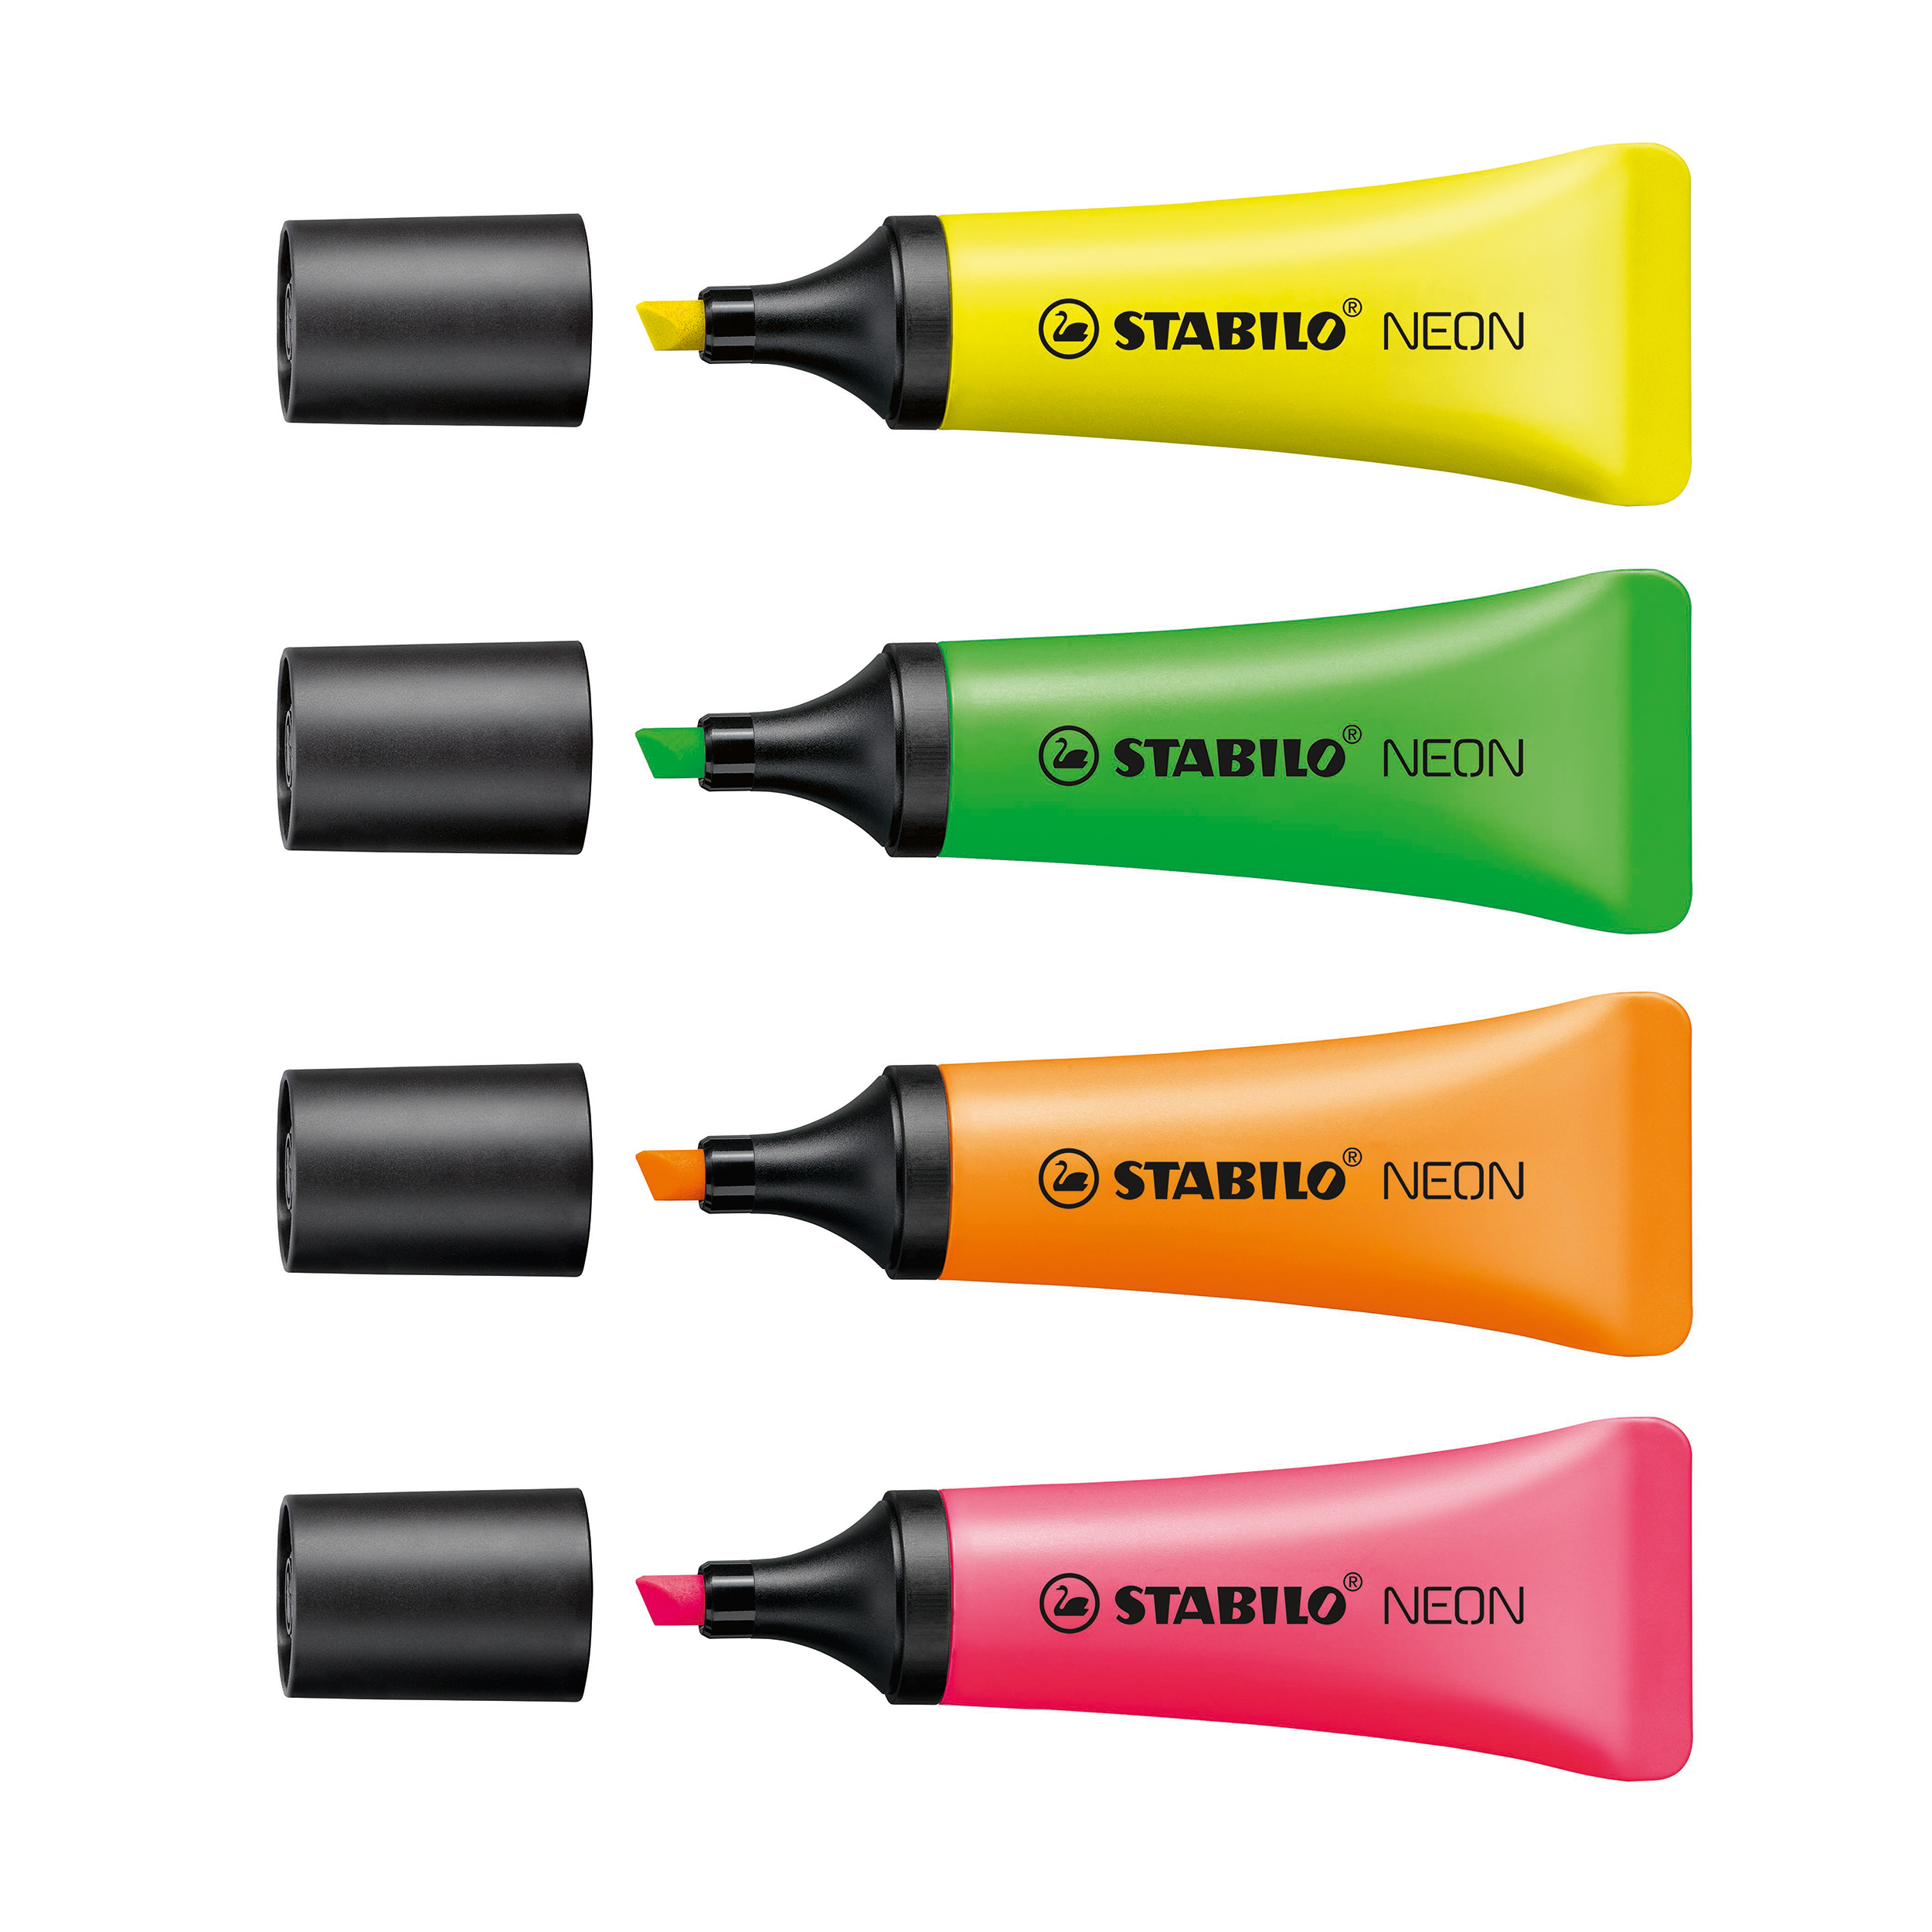 Stabilo Neon Highlighter Chisel Tip 2-5mm Wallet Neon Ink Assorted Ref 72/4-1 [Pack 4]